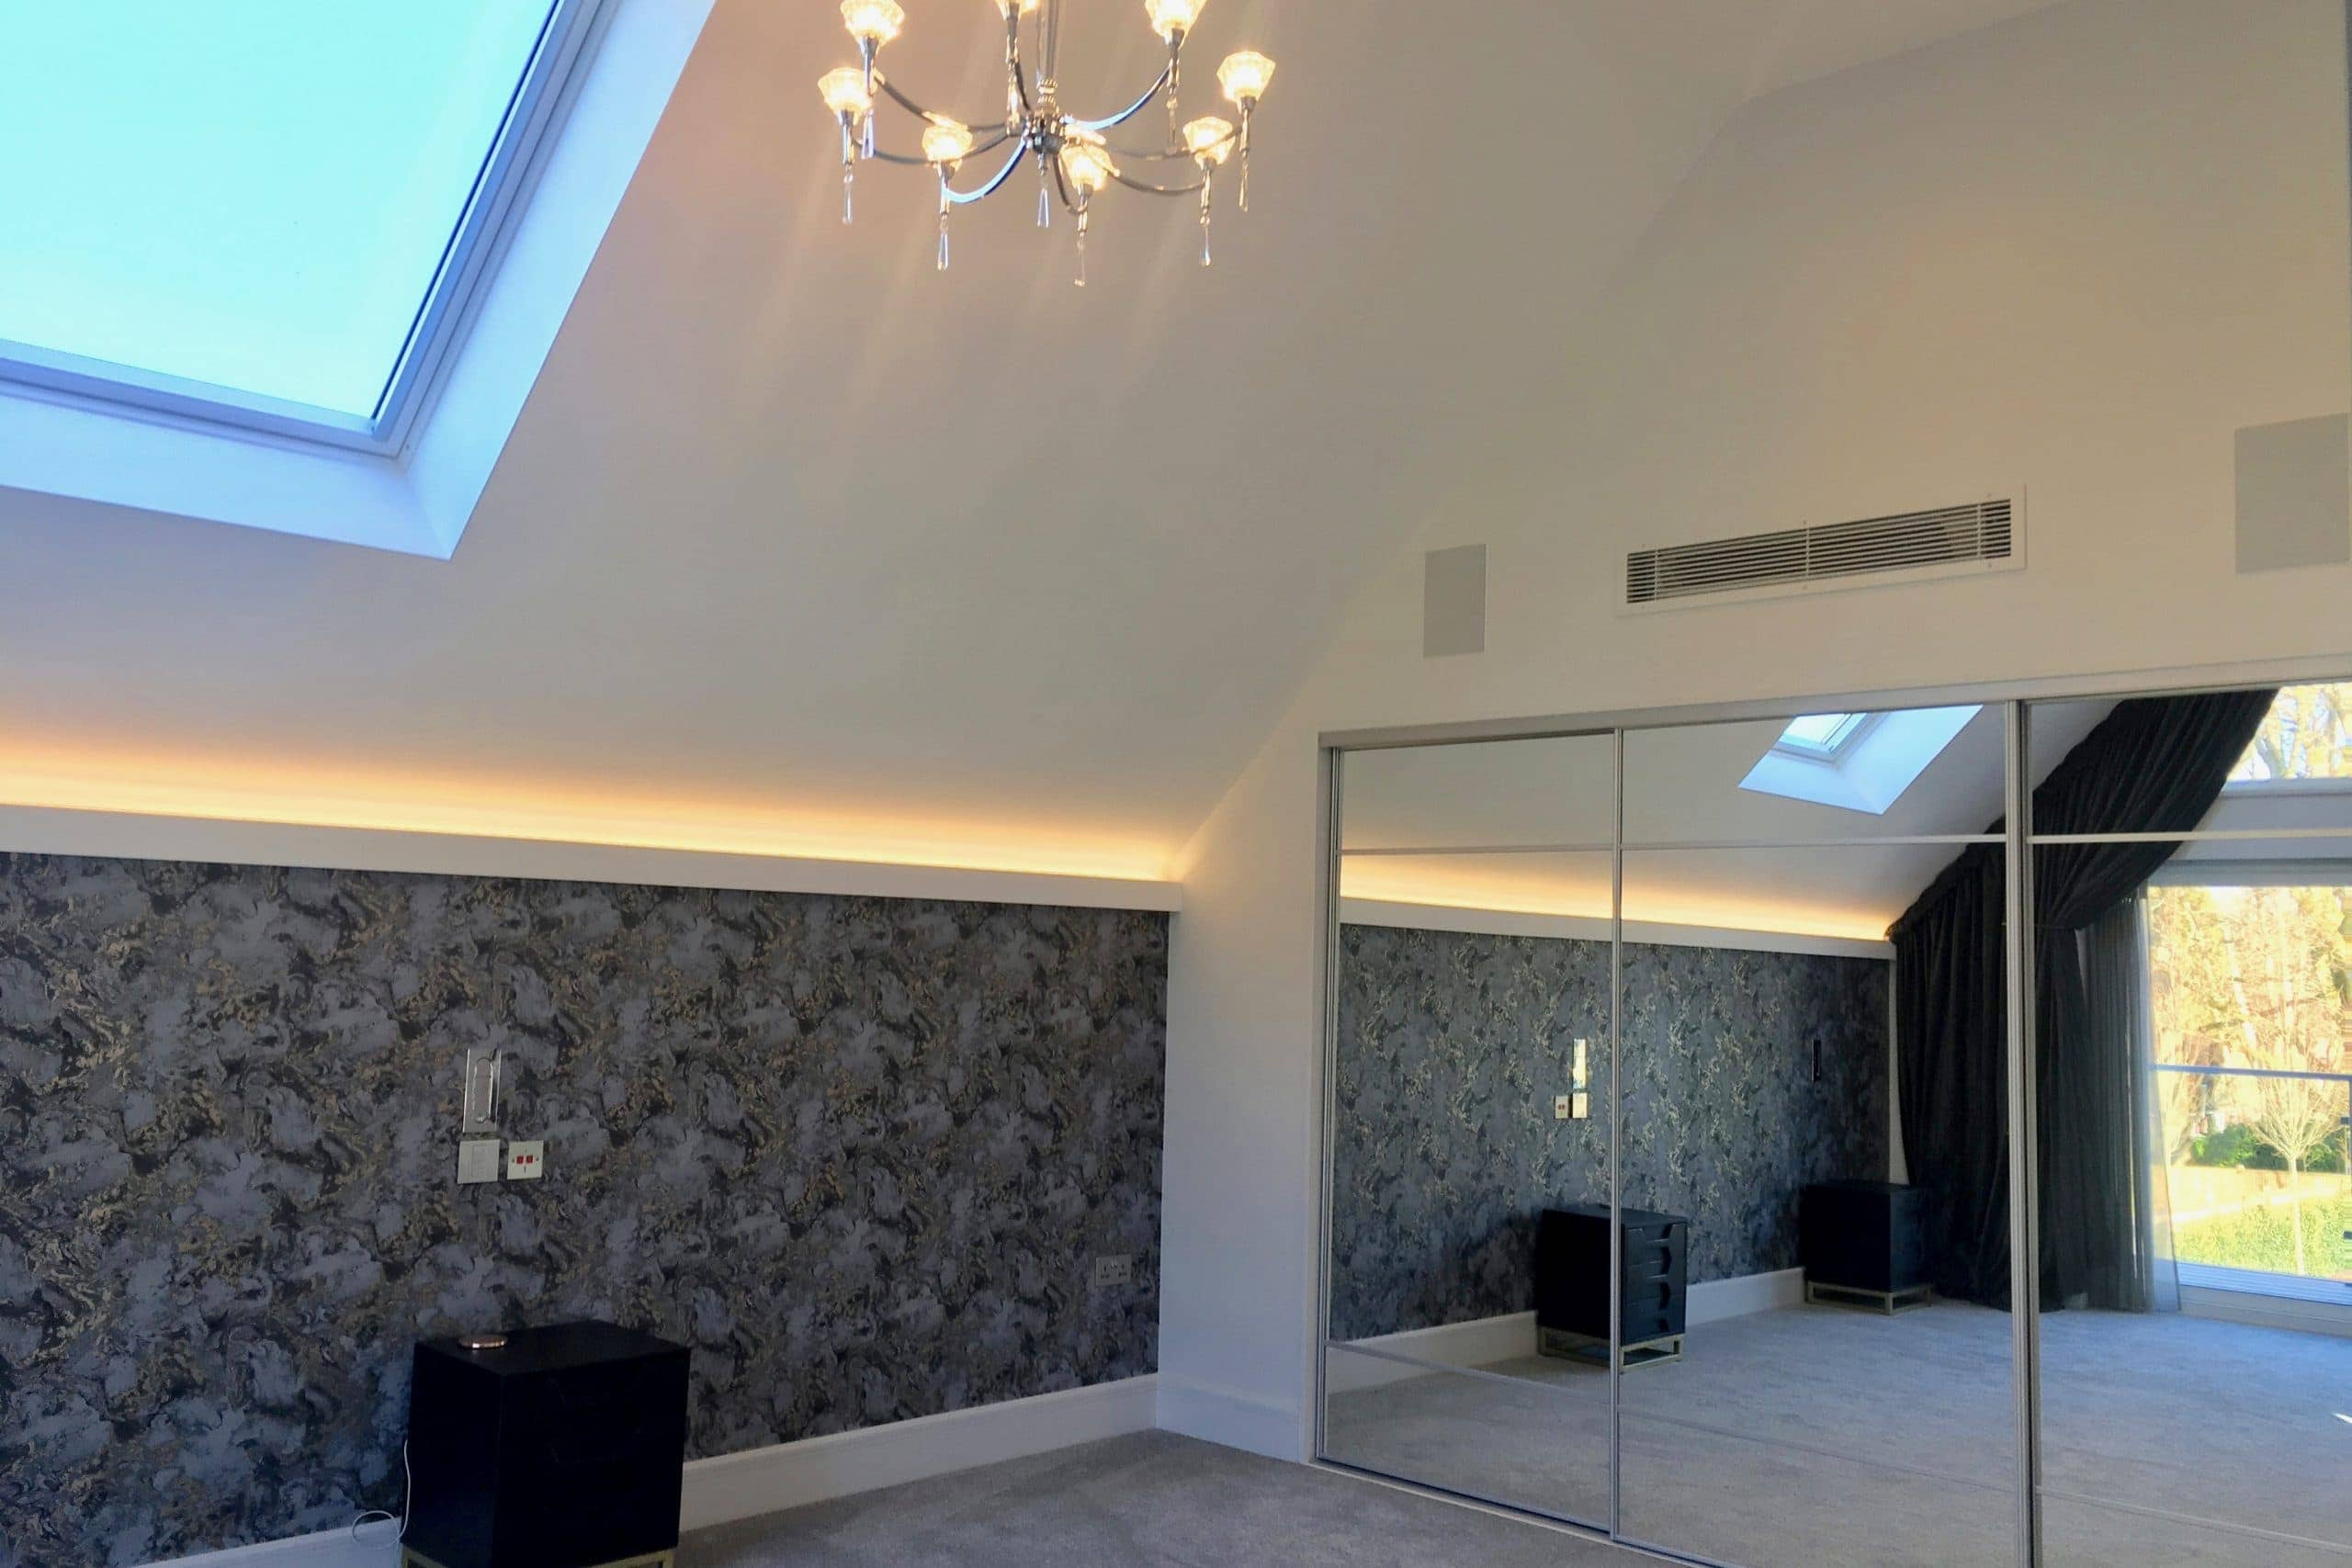 Master bedroom in Scandia Hus new build with air conditioning and MVHR system above and within wardrobe designed and fitted by SubCool FM